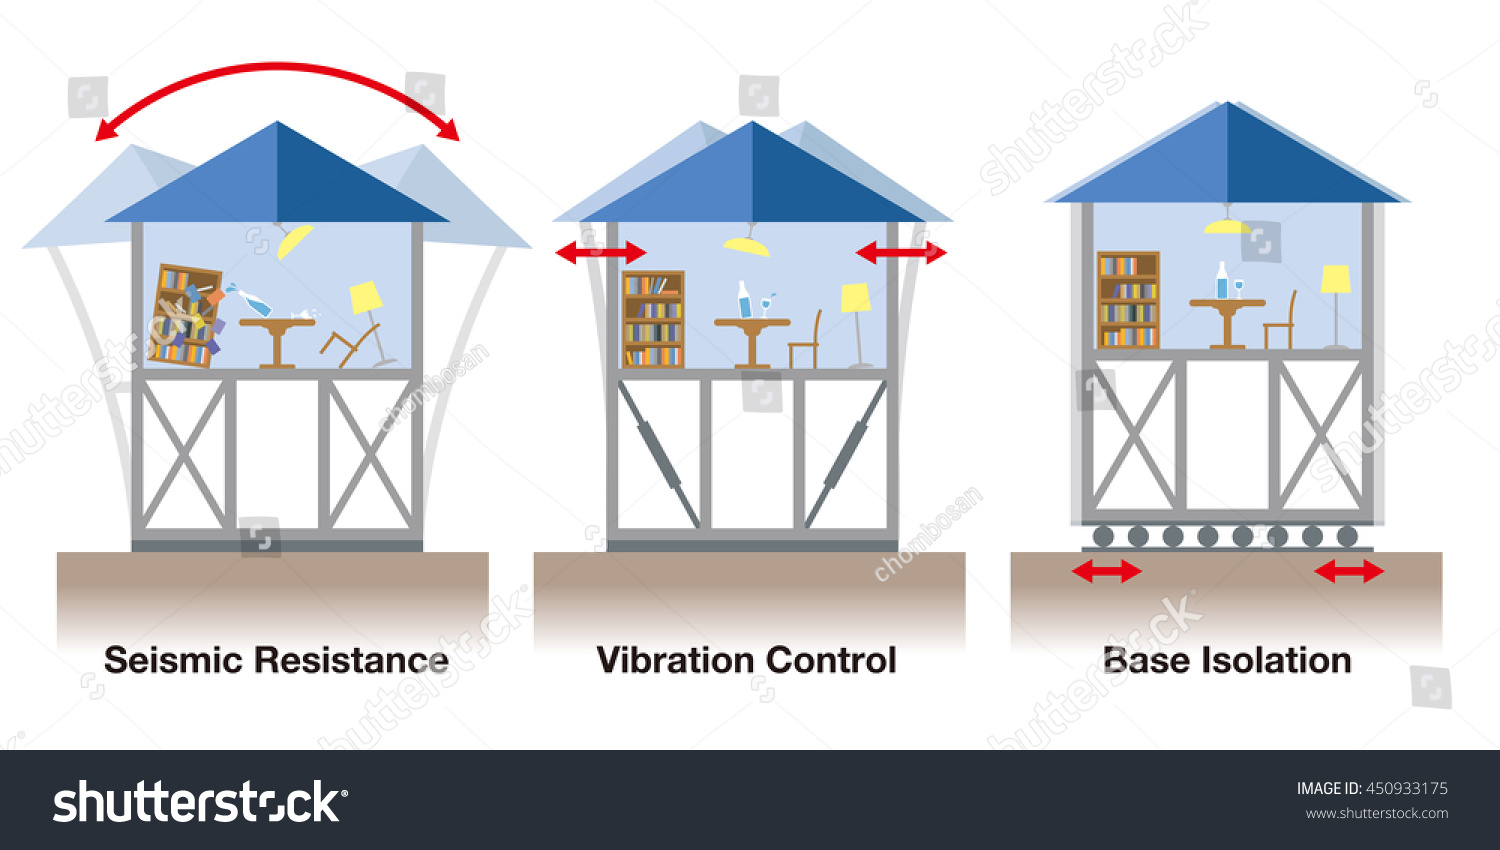 House design earthquake proof - Earthquake Resistant House Contrast Diagram Seismic Resistance Vibration Control And Base Isolation